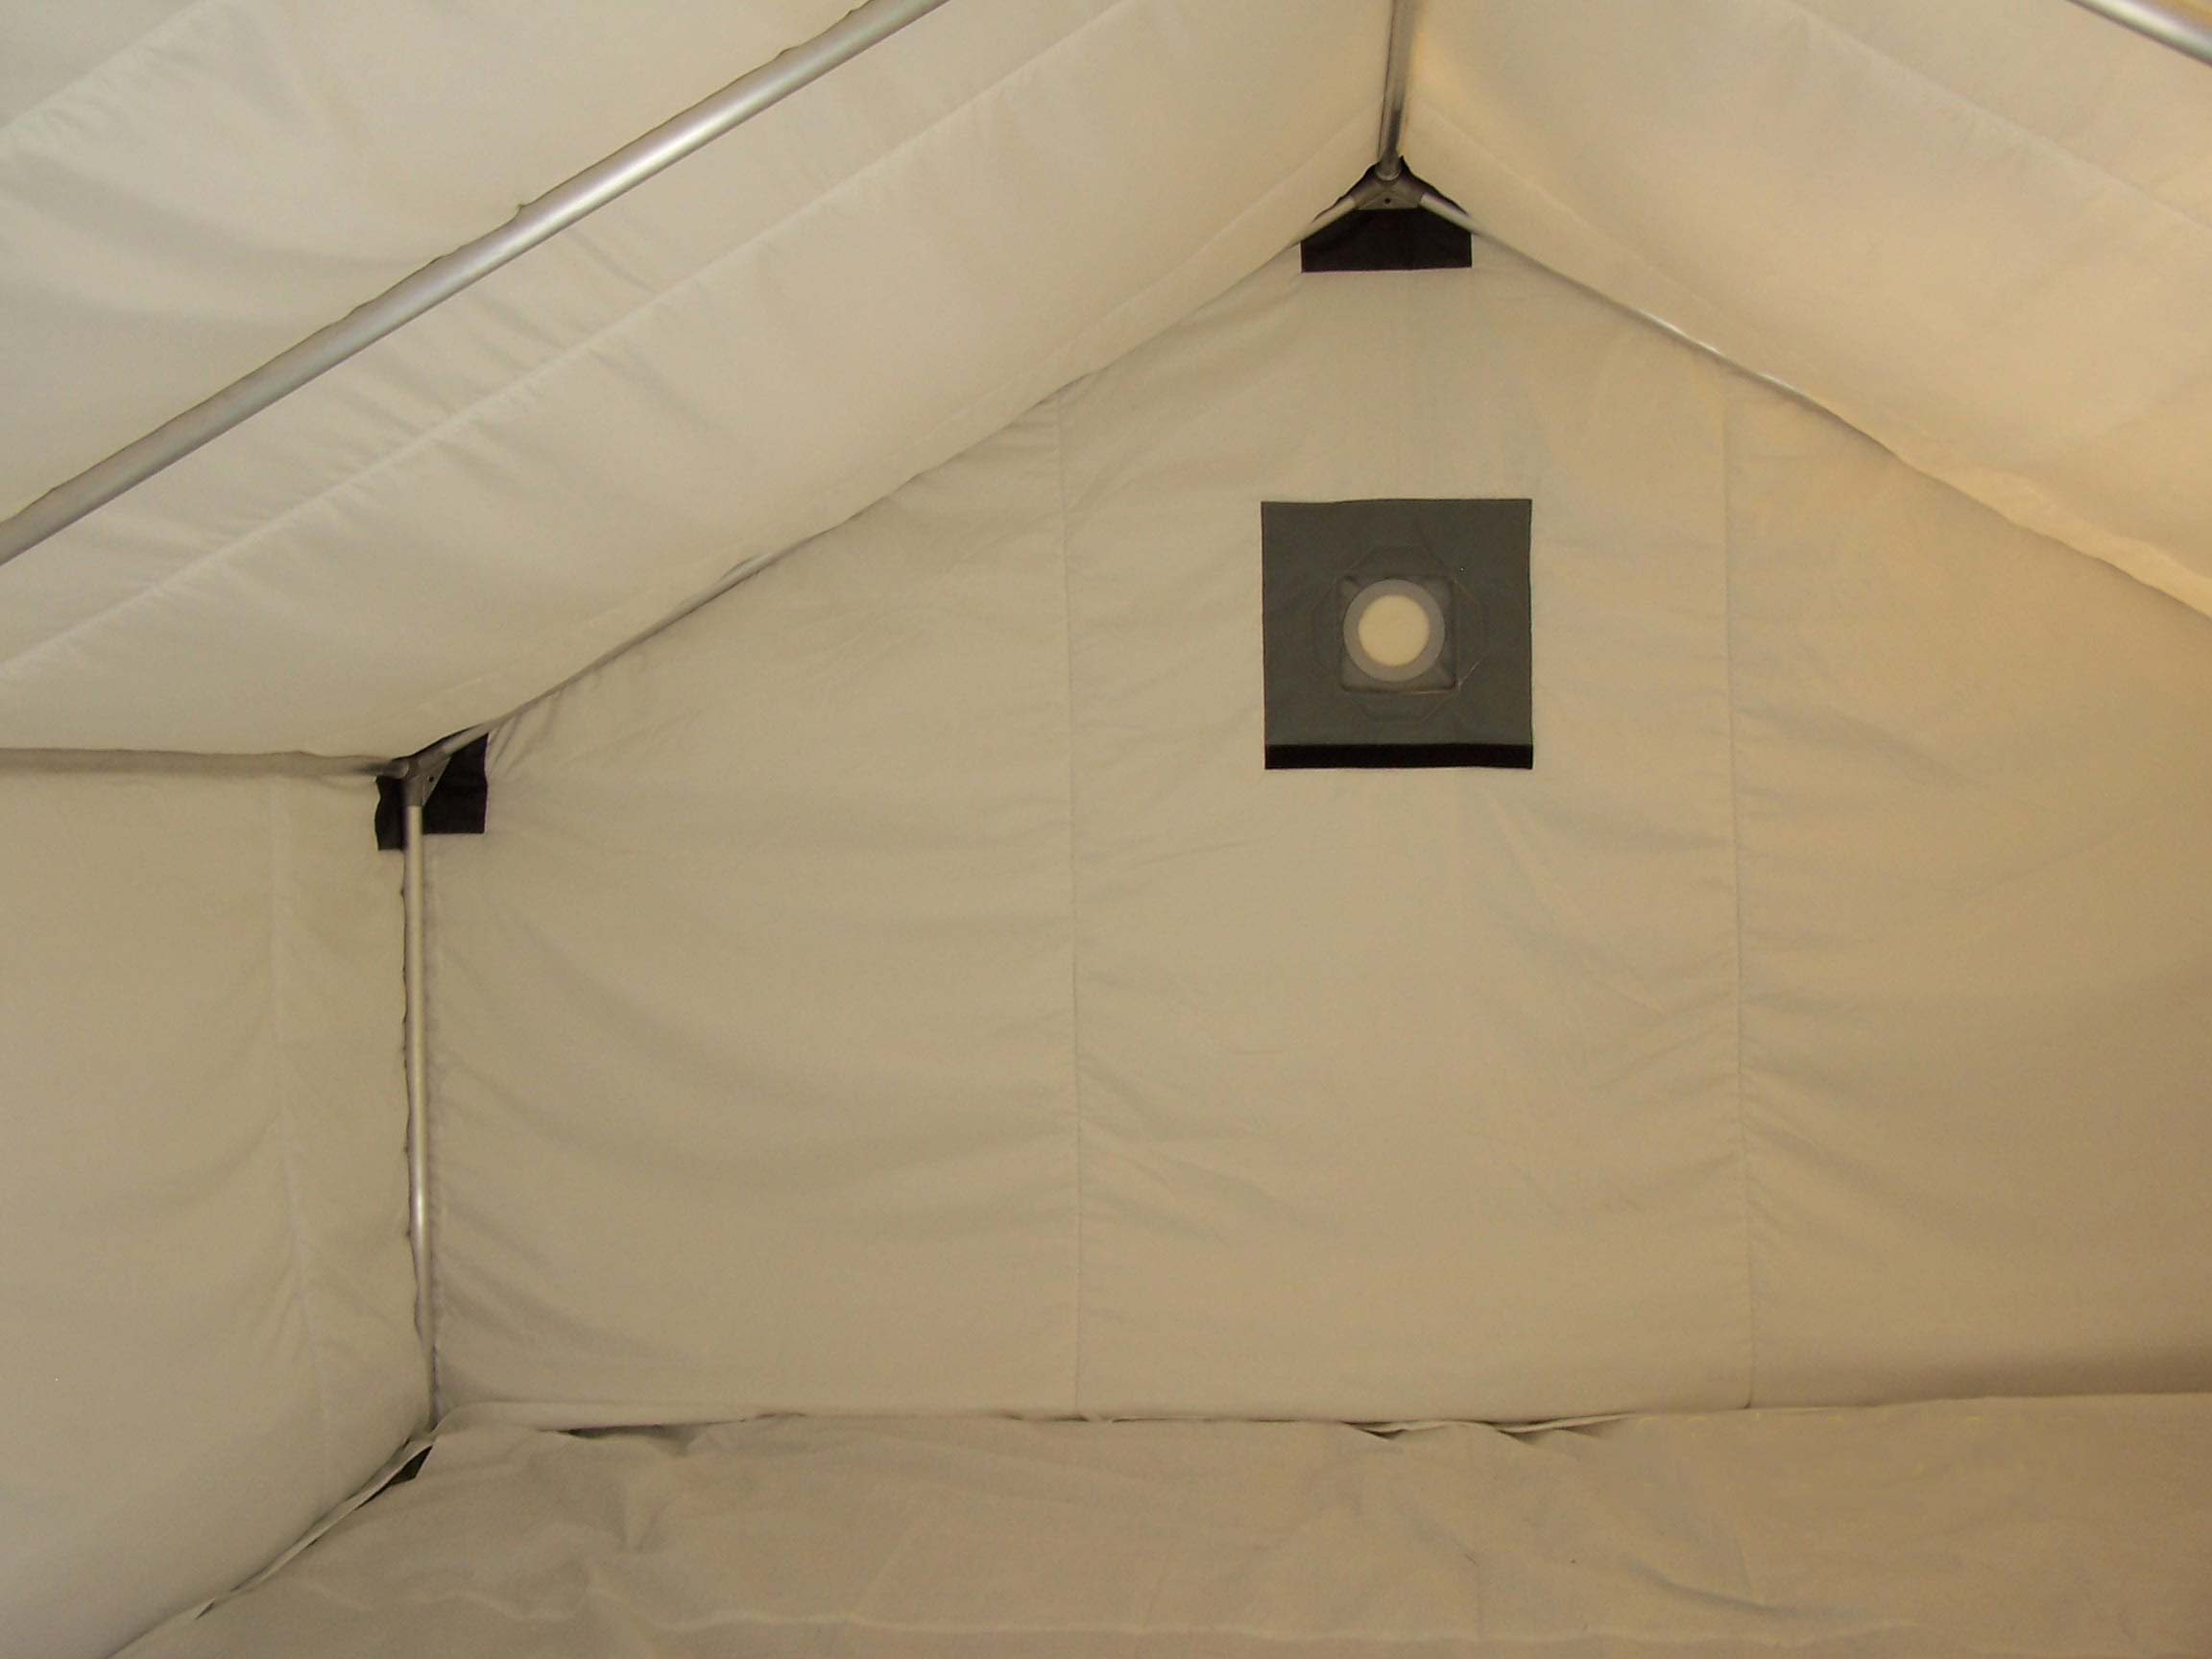 Insulated tents prices : insulated tent fabric - memphite.com